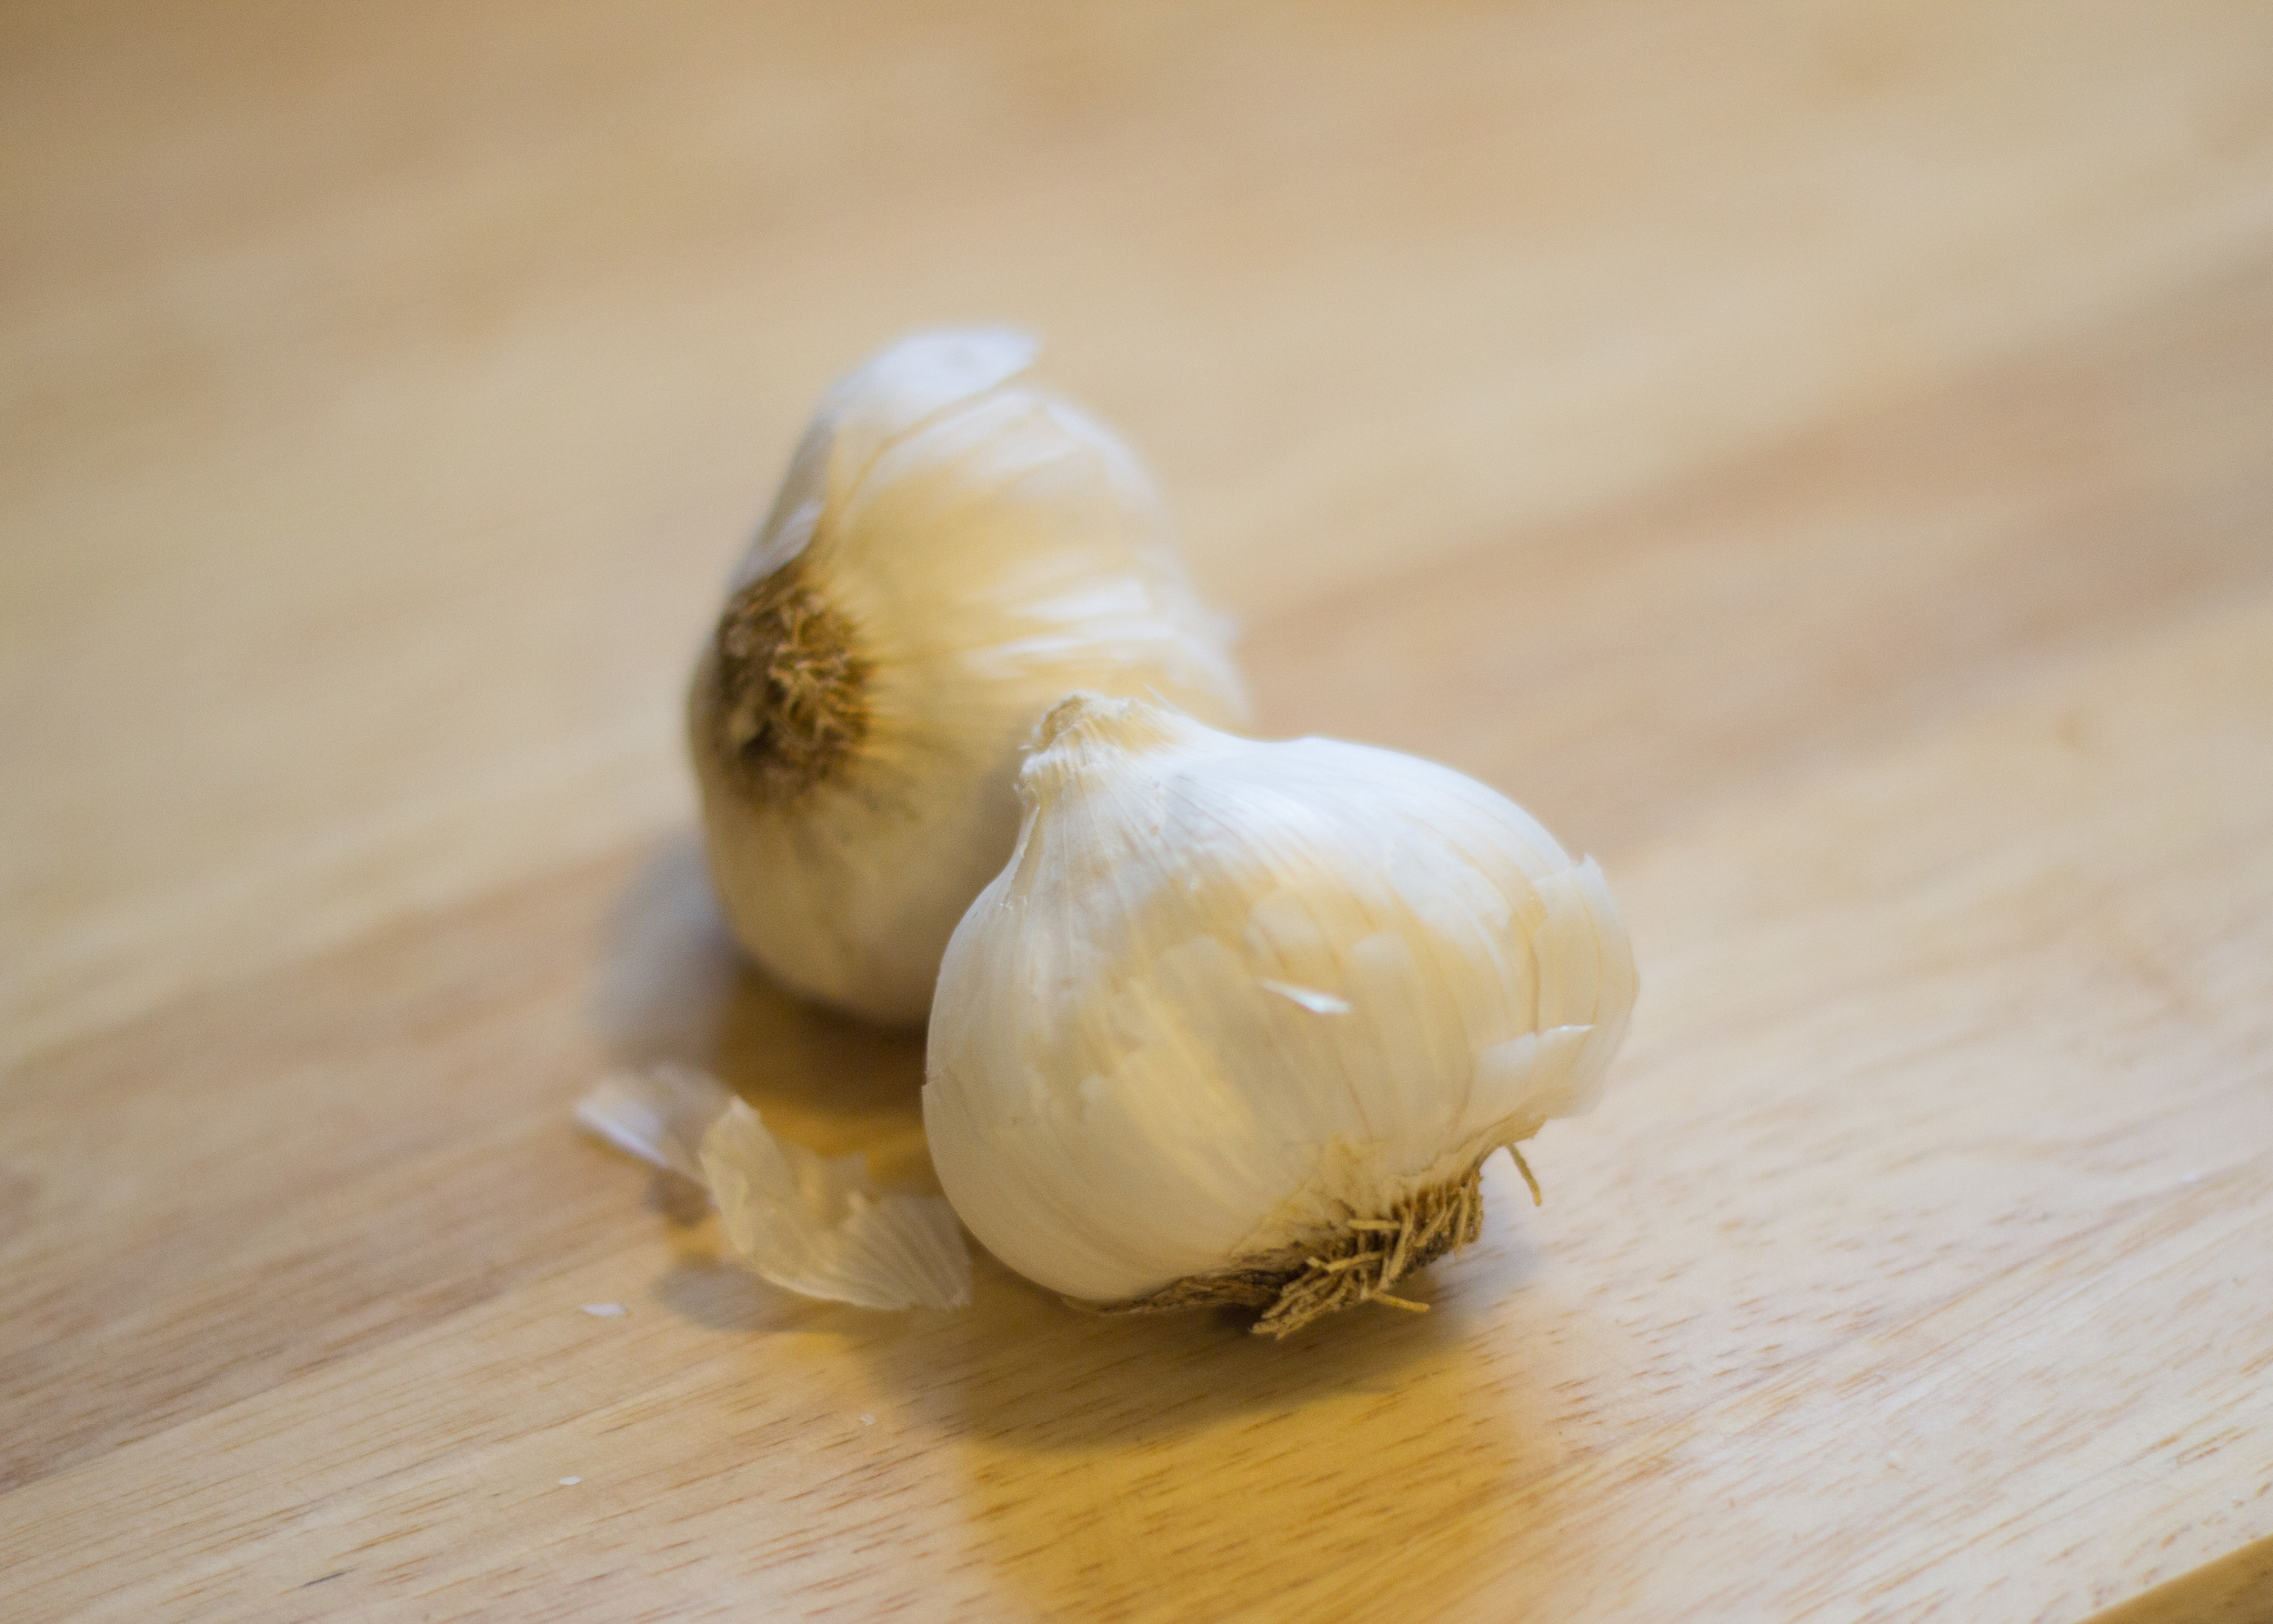 Garlic, always have garlic on hand